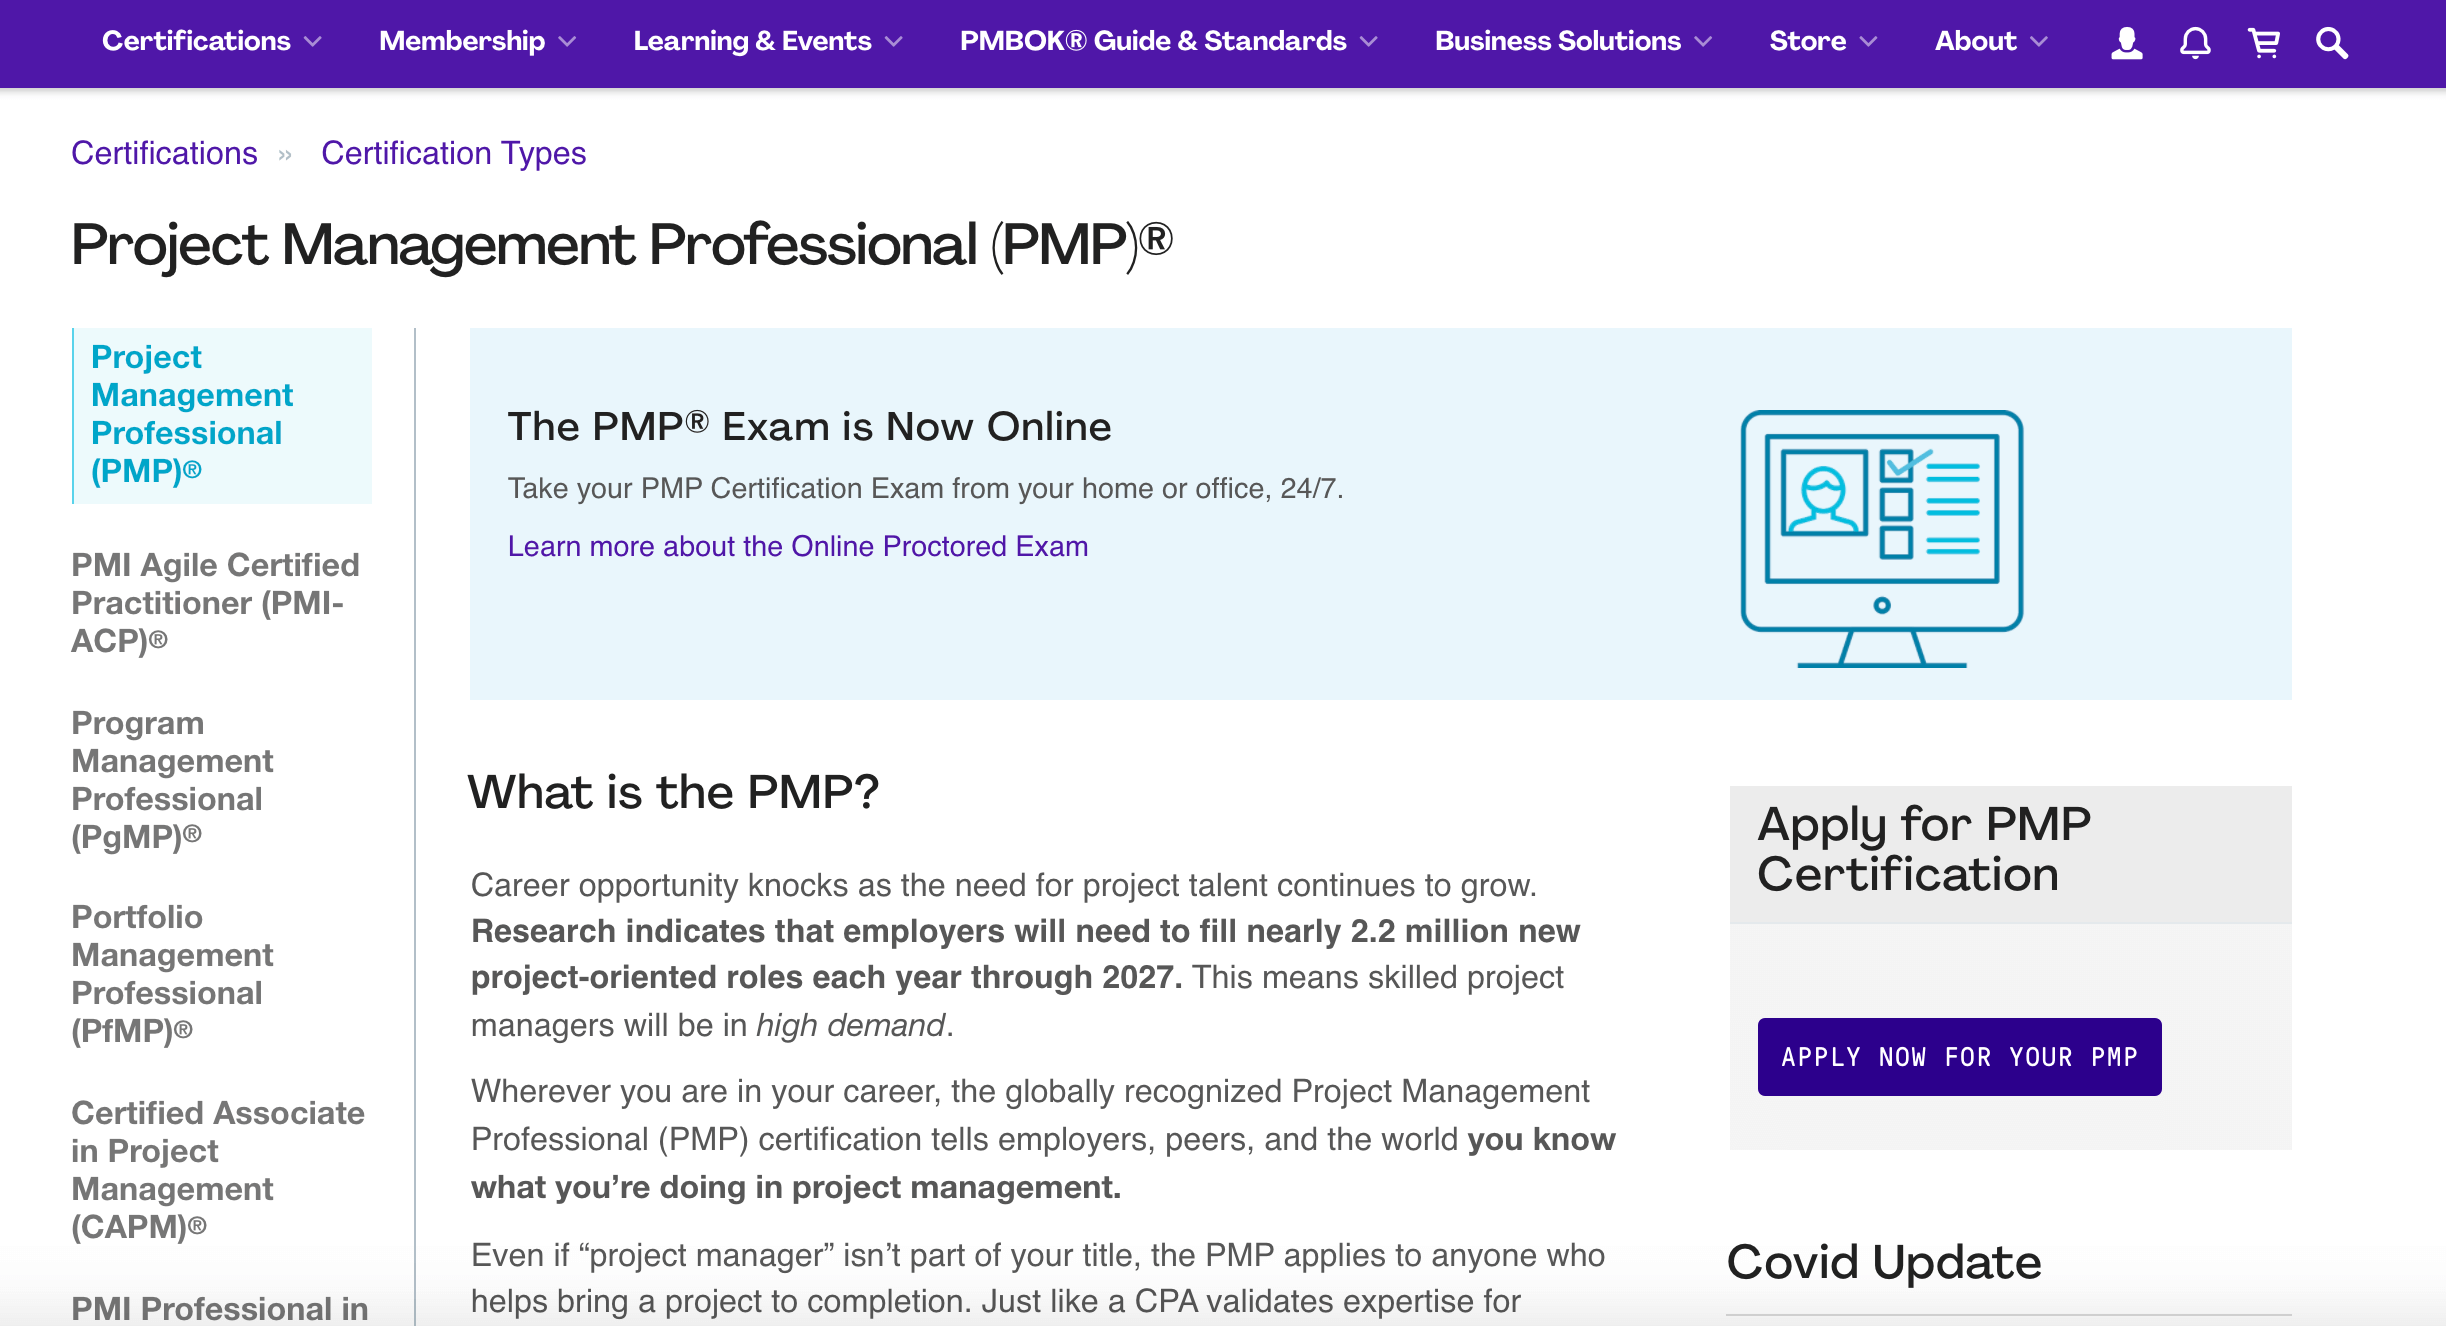 Apply for PMP certification page